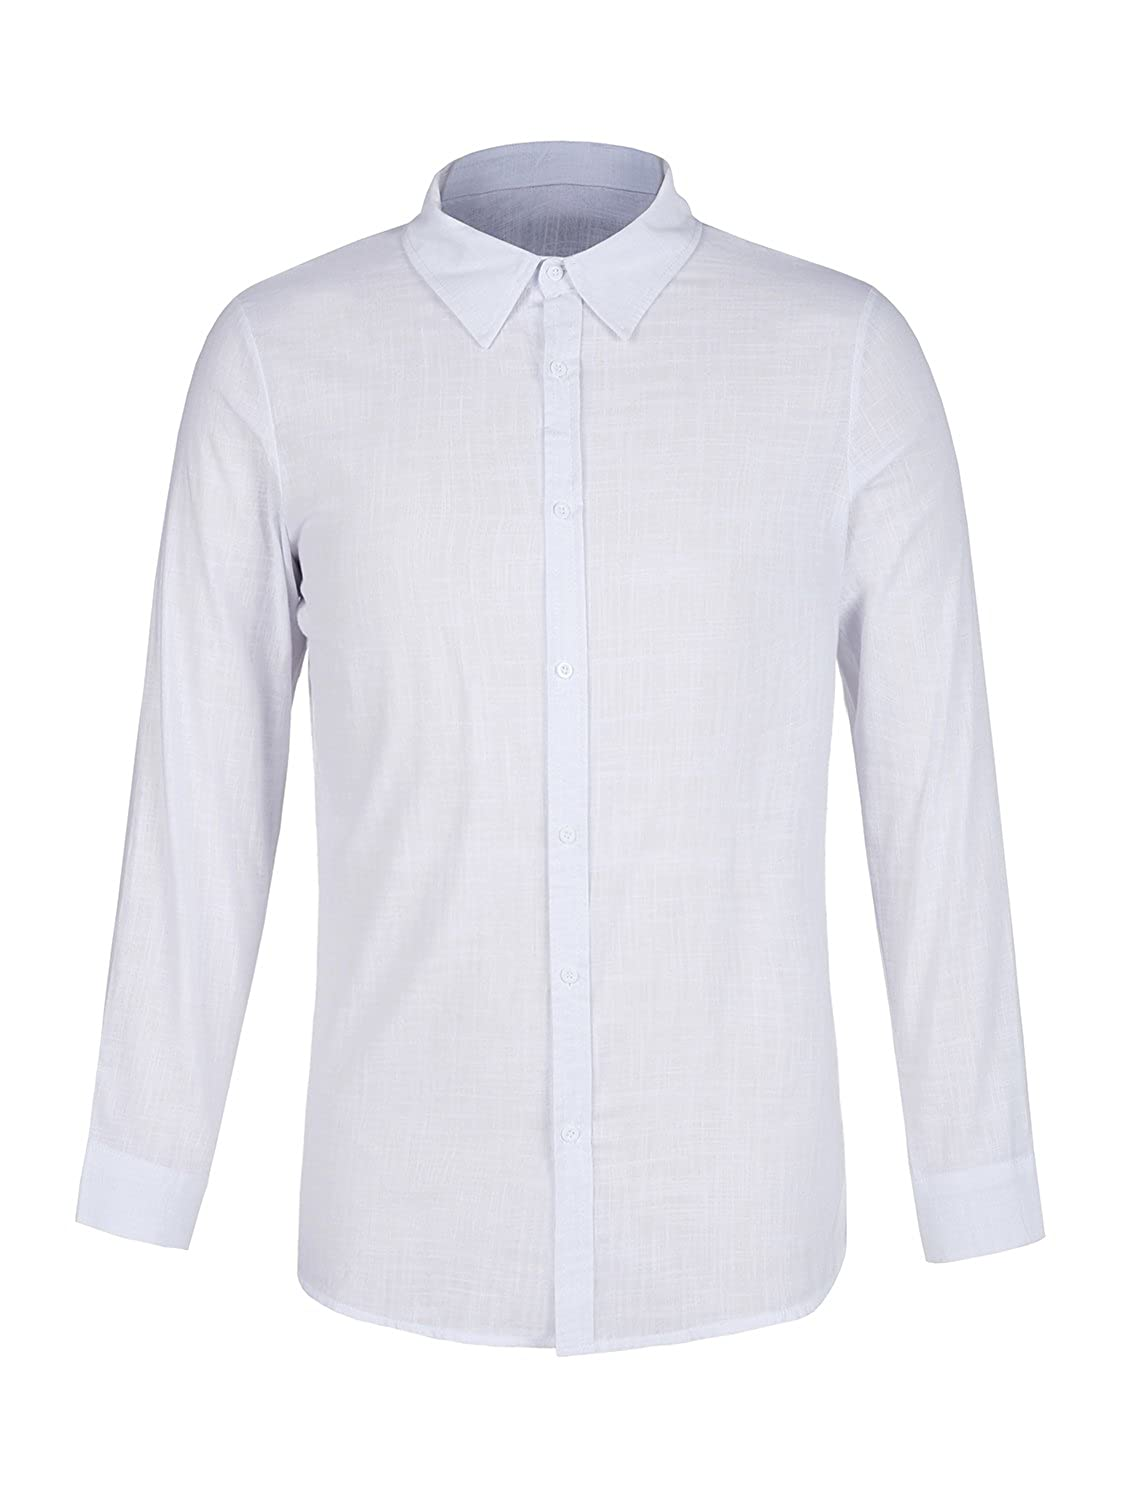 17b776b62ee Makkrom Mens Casual Loose Long Sleeve Shirts Button Up Linen Cotton Summer  Beach T Shirt Tops at Amazon Men s Clothing store